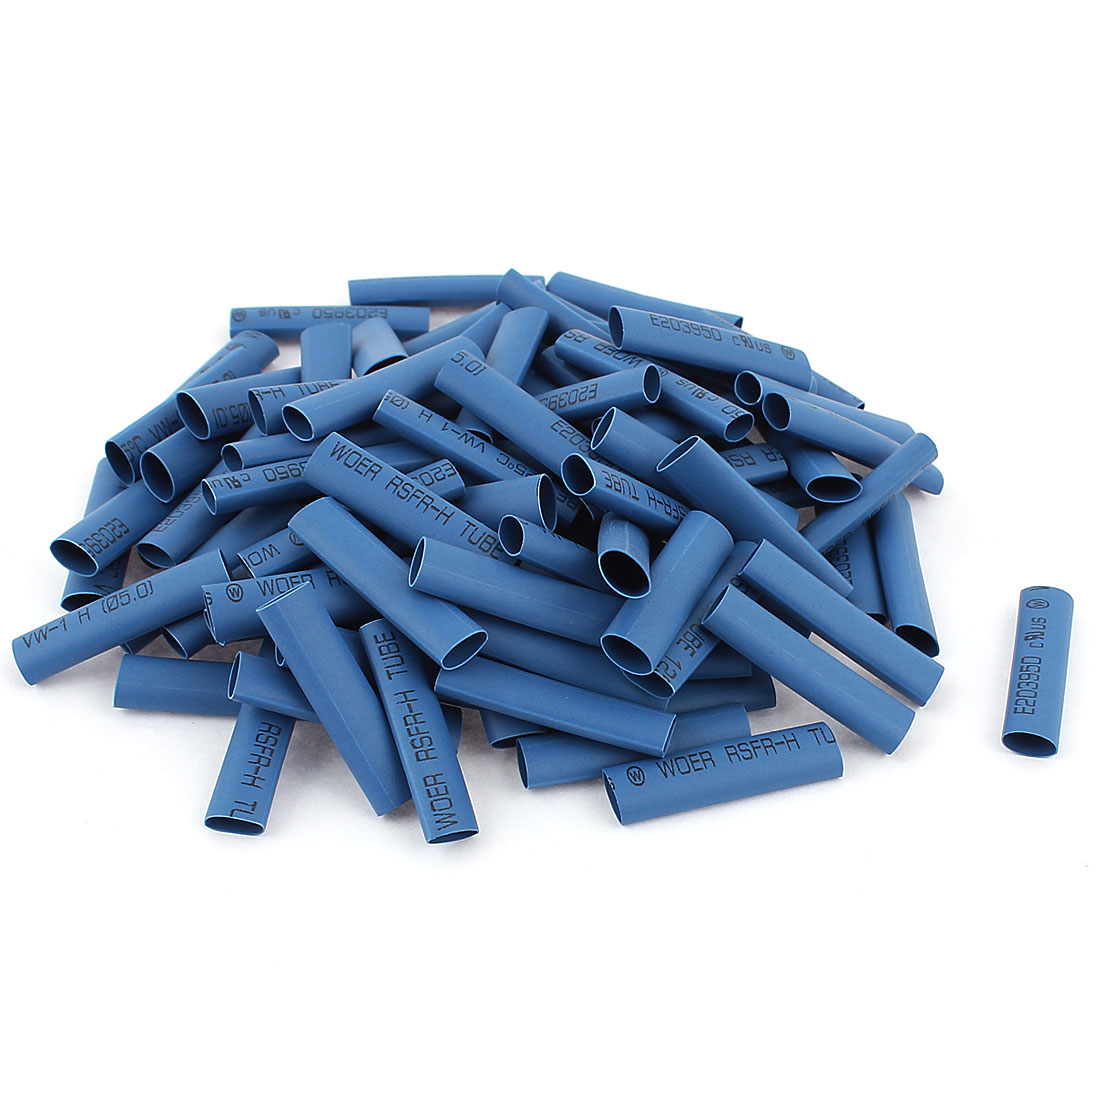 100pcs 5mm Dia Heat Shrink Tubing Tube Electric Wire Wrap Sleeve 30mm Blue